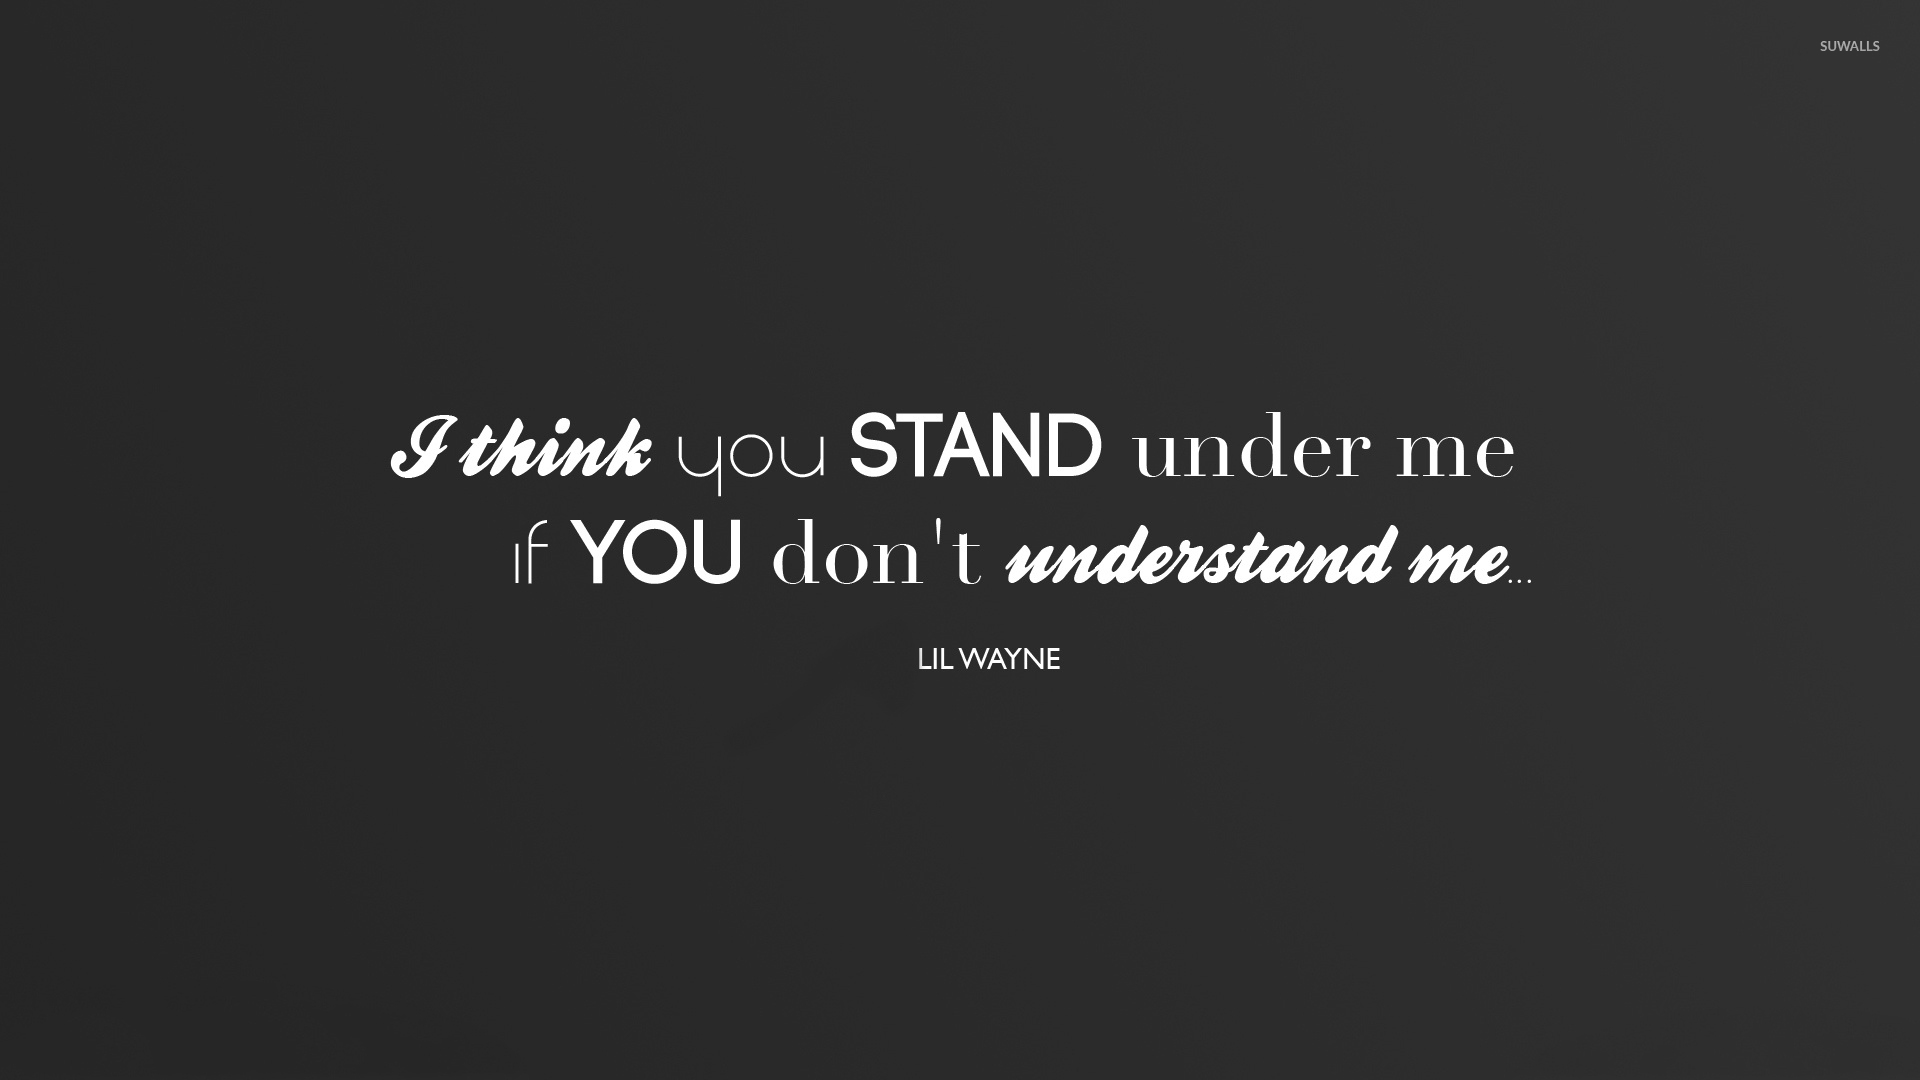 Motivational Quotes Computer Backgrounds Wallpapers I Think You Stand Under Me Wallpaper Quote Wallpapers